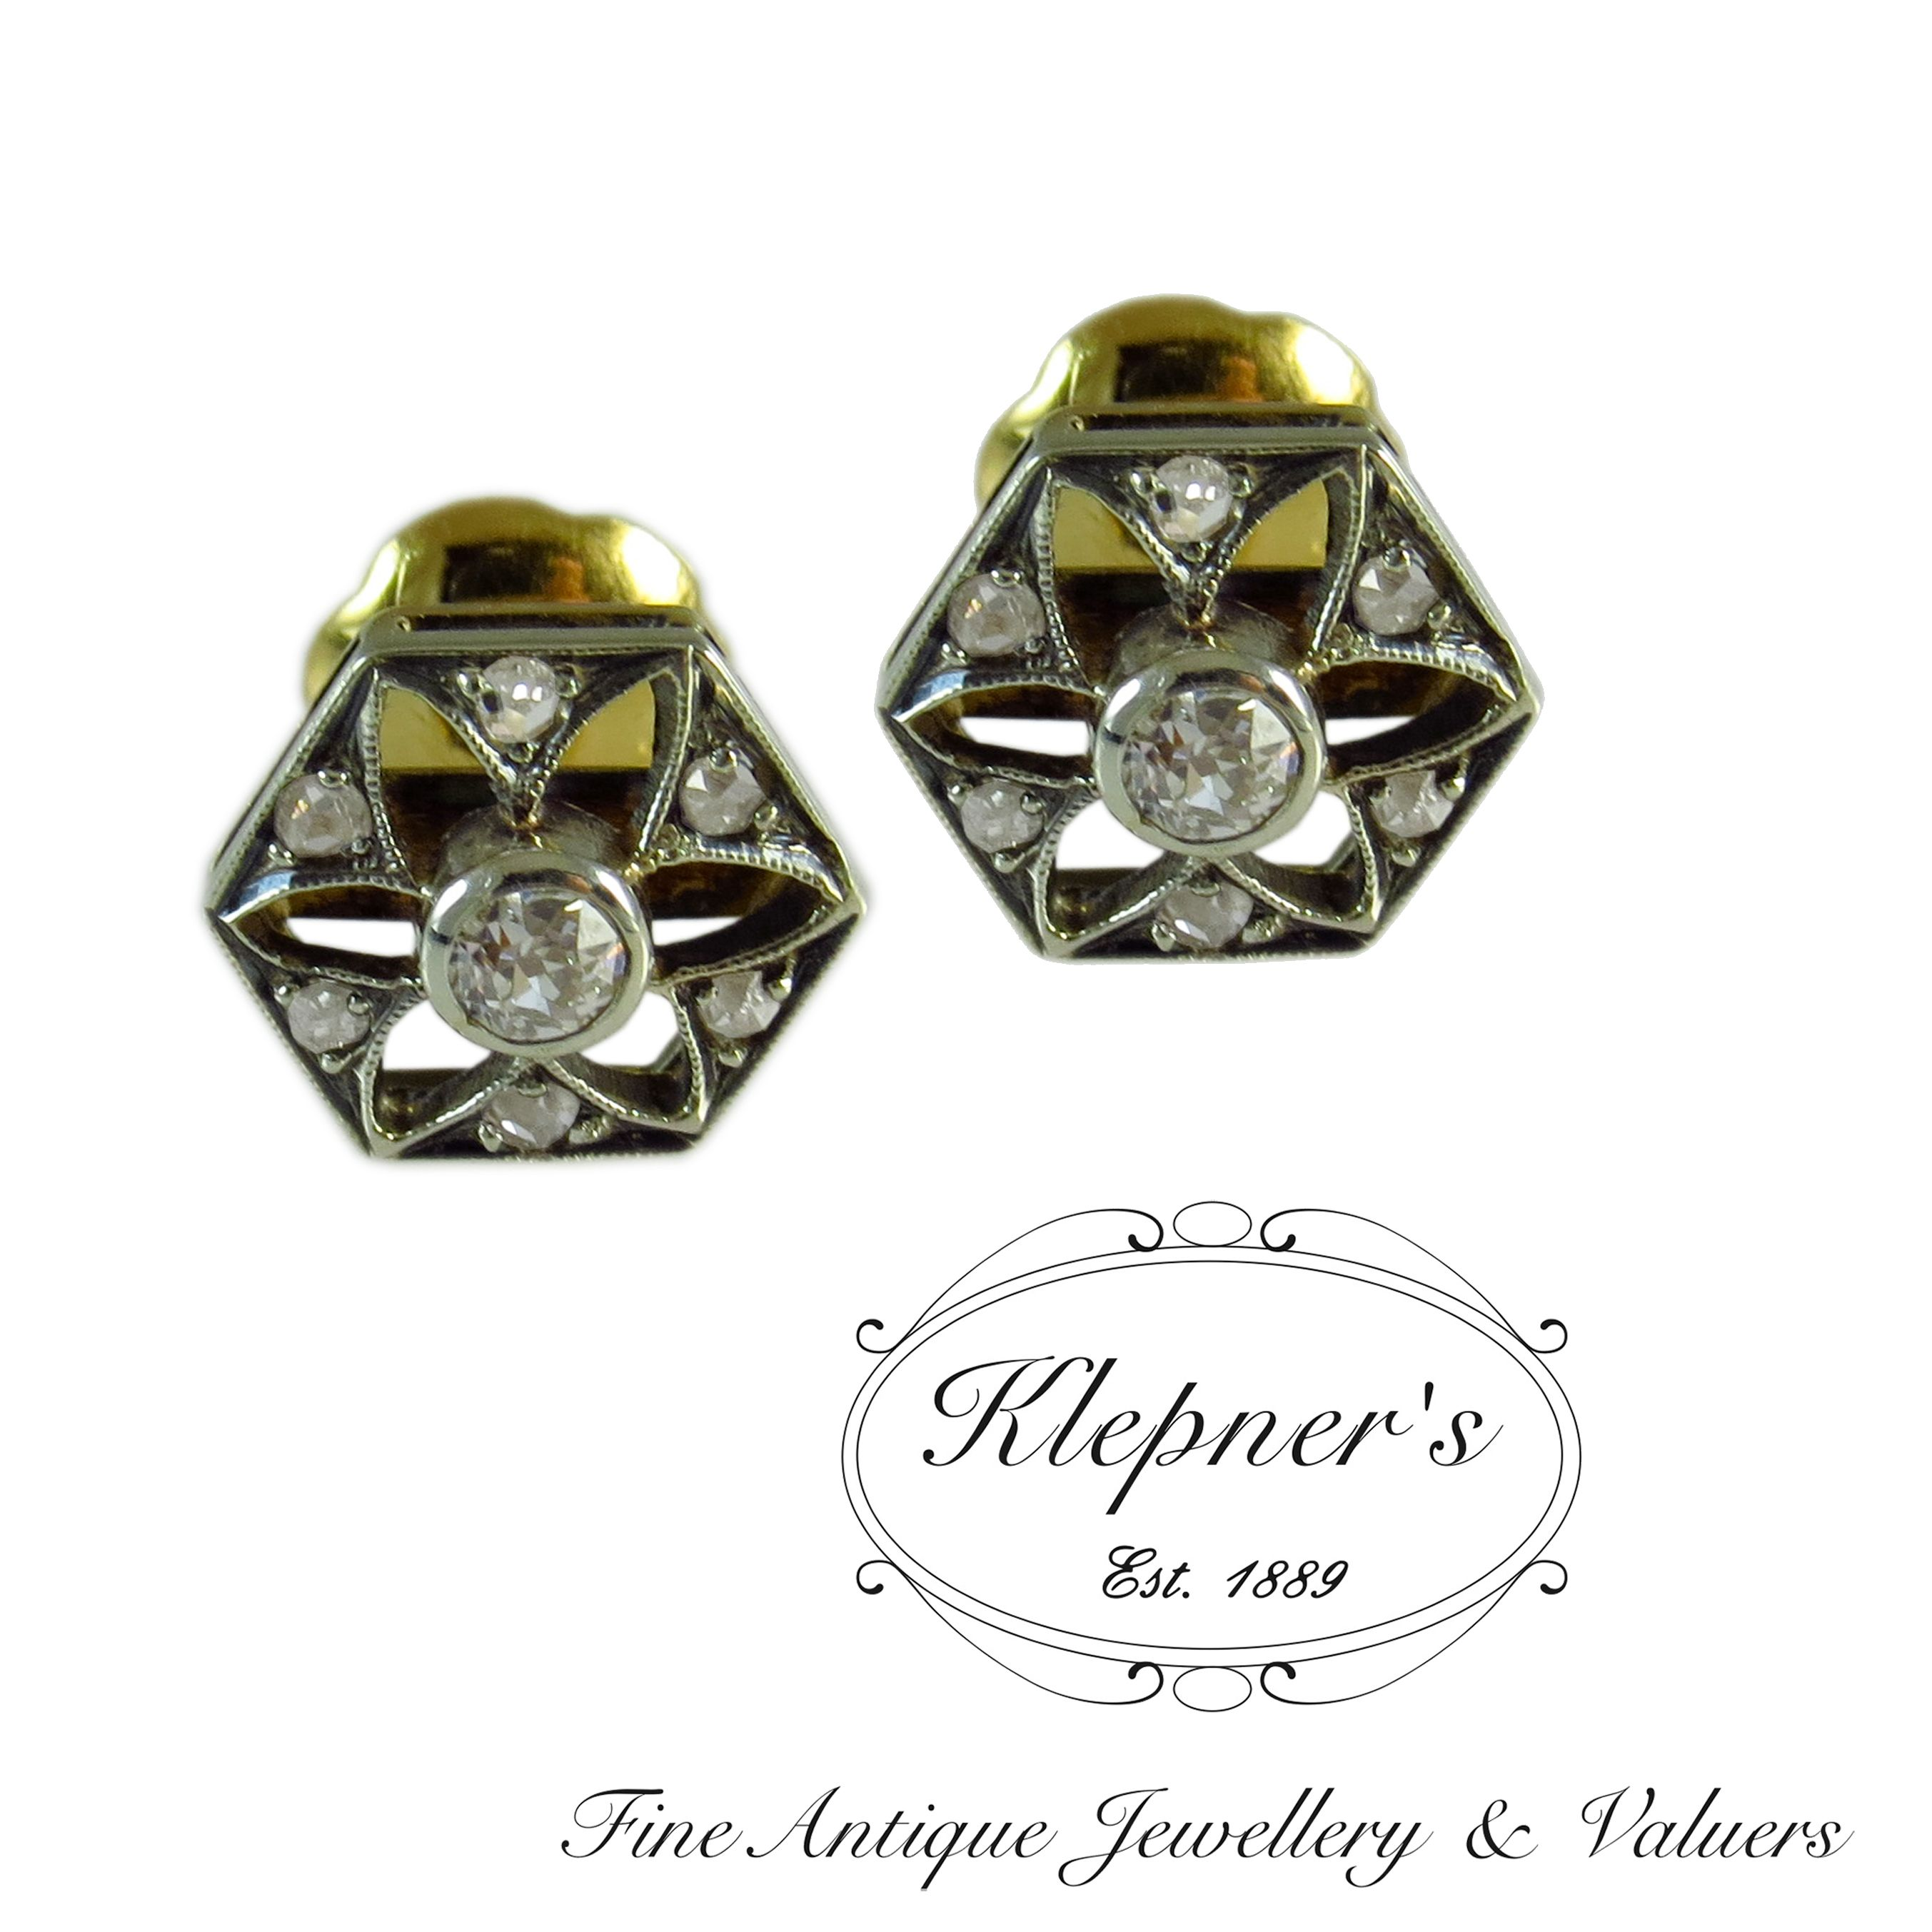 antique stud art diamond deco us com vintage earrings at pin visit klepners